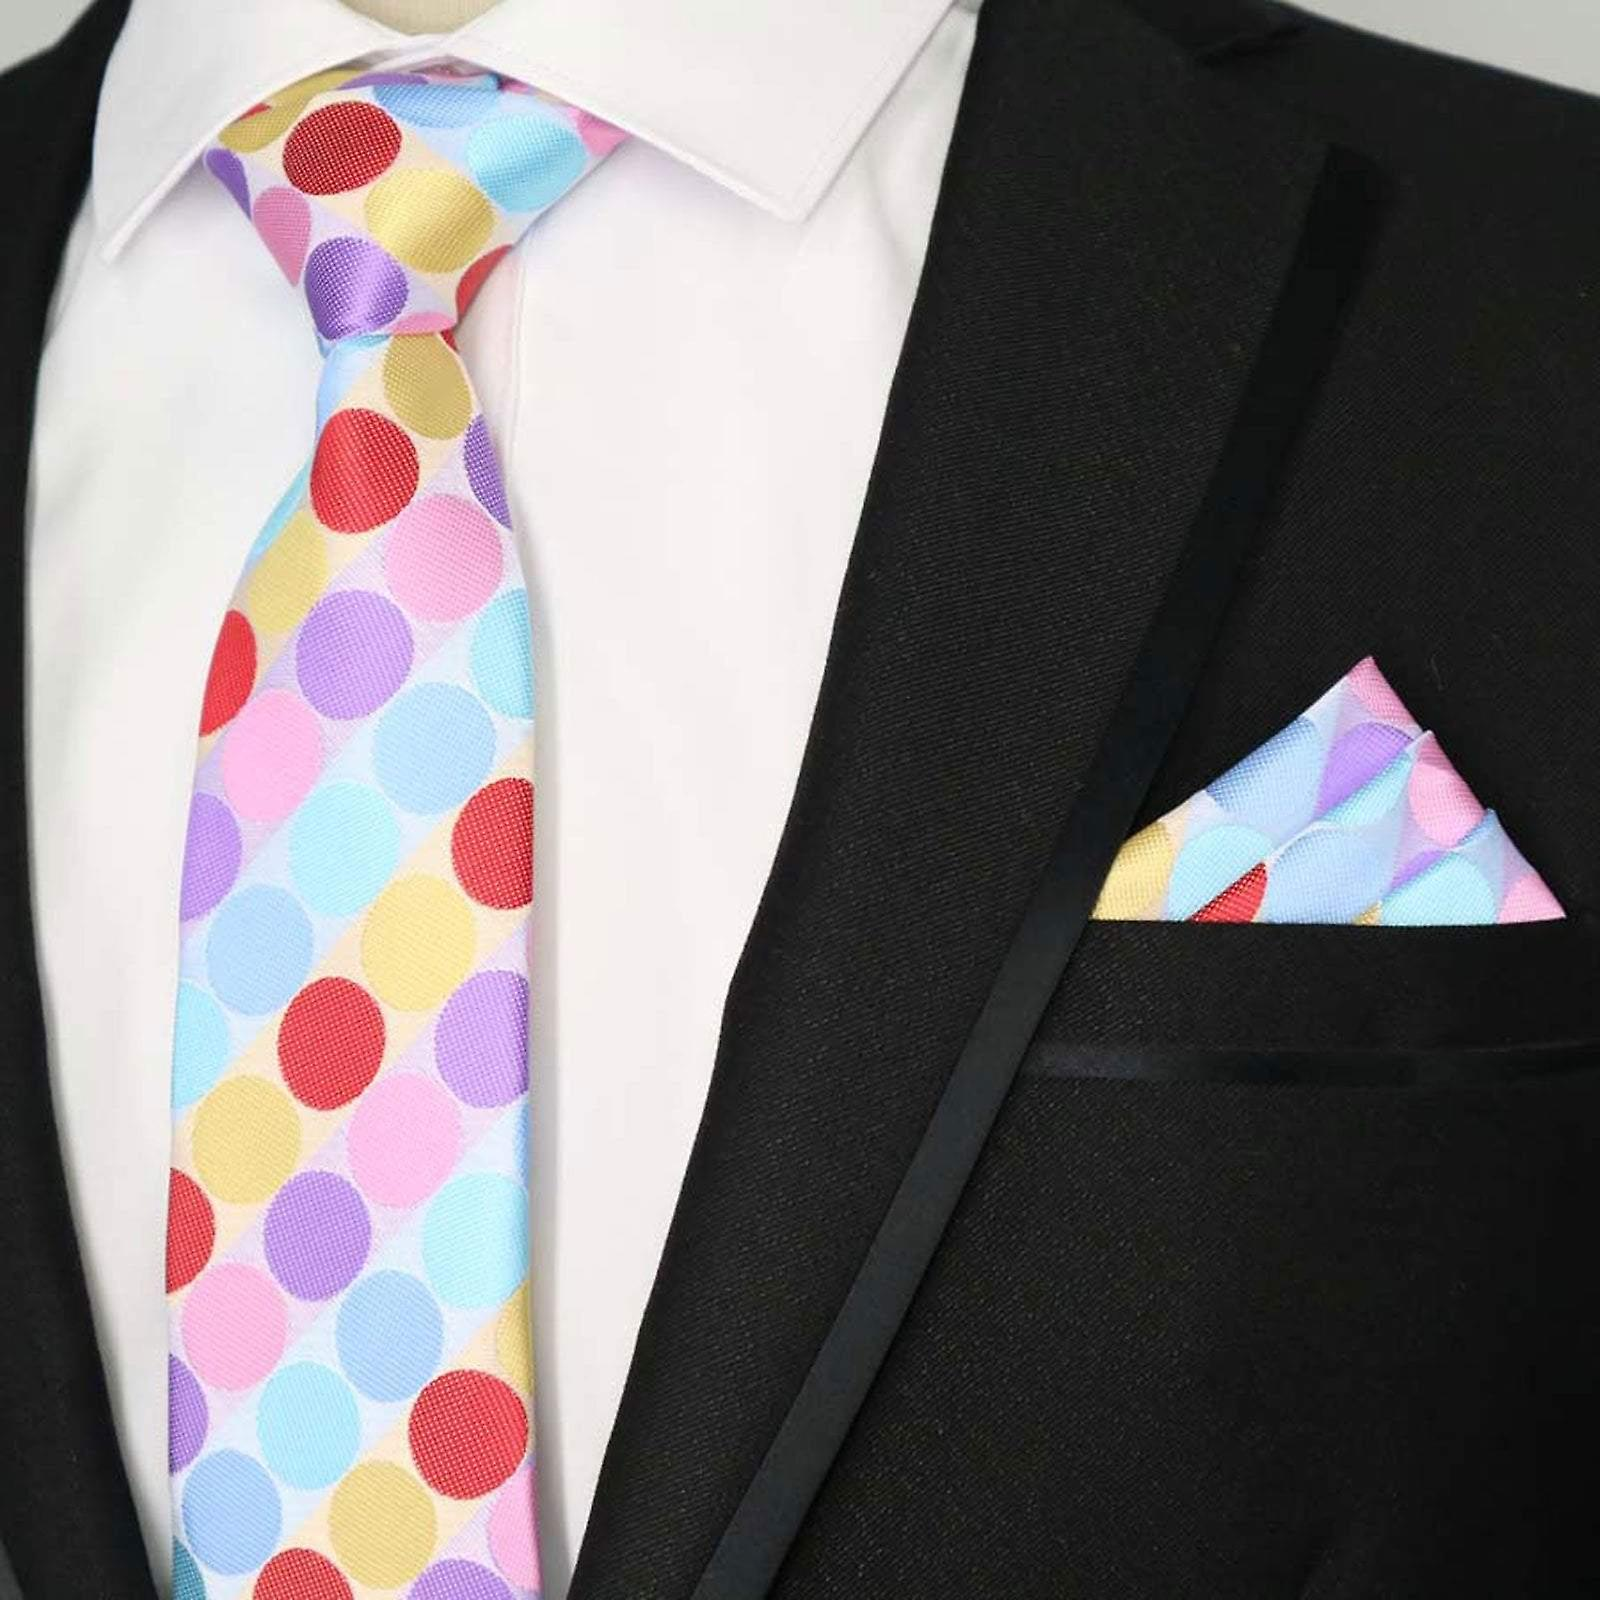 Yellow pink blue & purple polka dot tie & pocket square